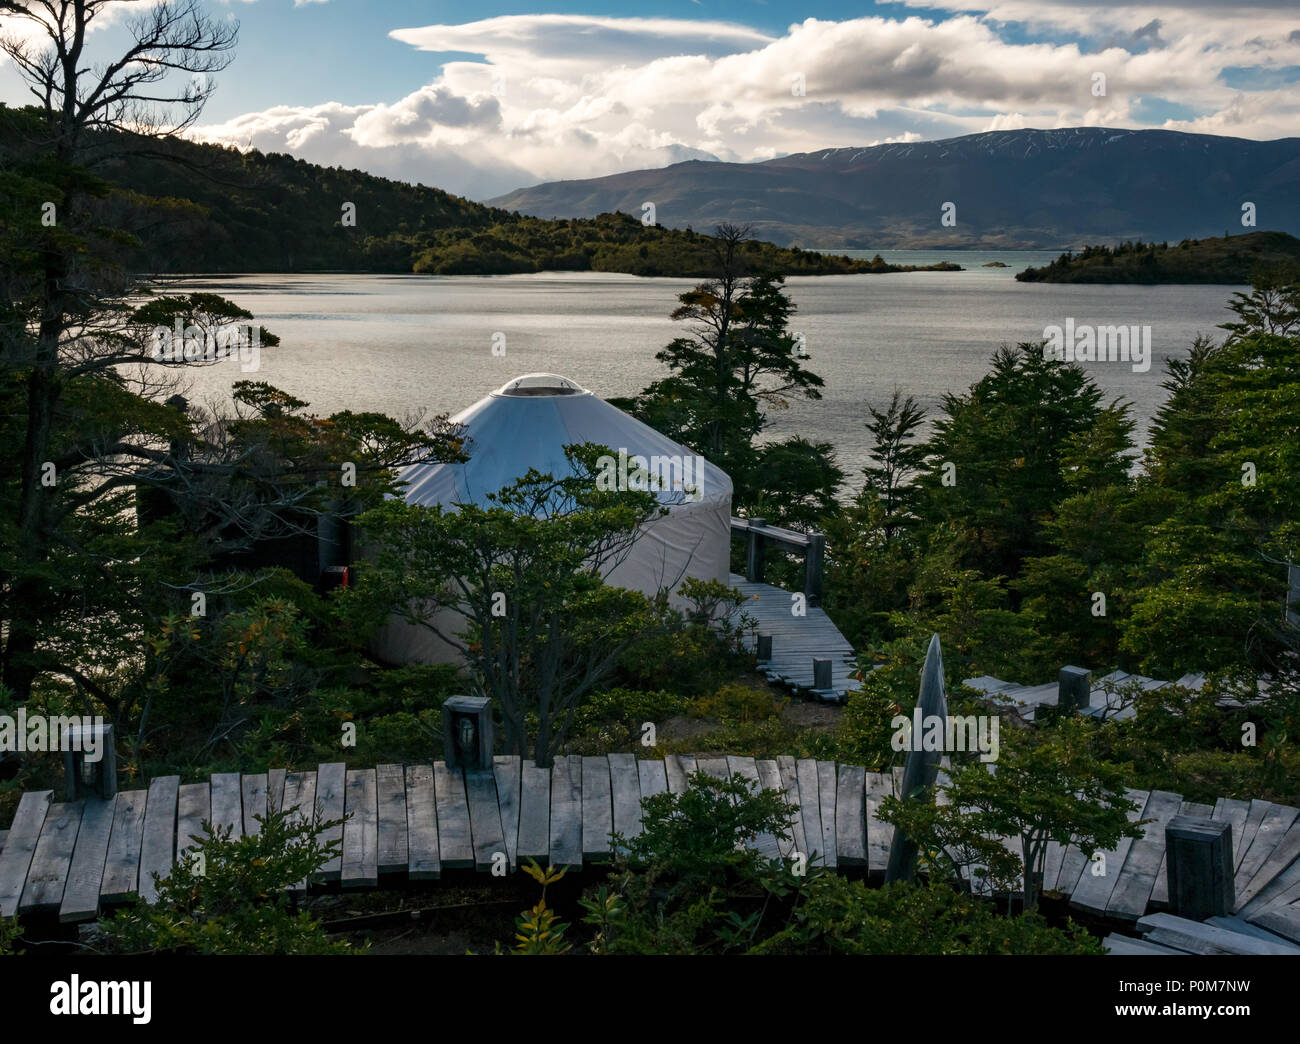 lakeside-view-of-patagonia-yurt-camp-lag